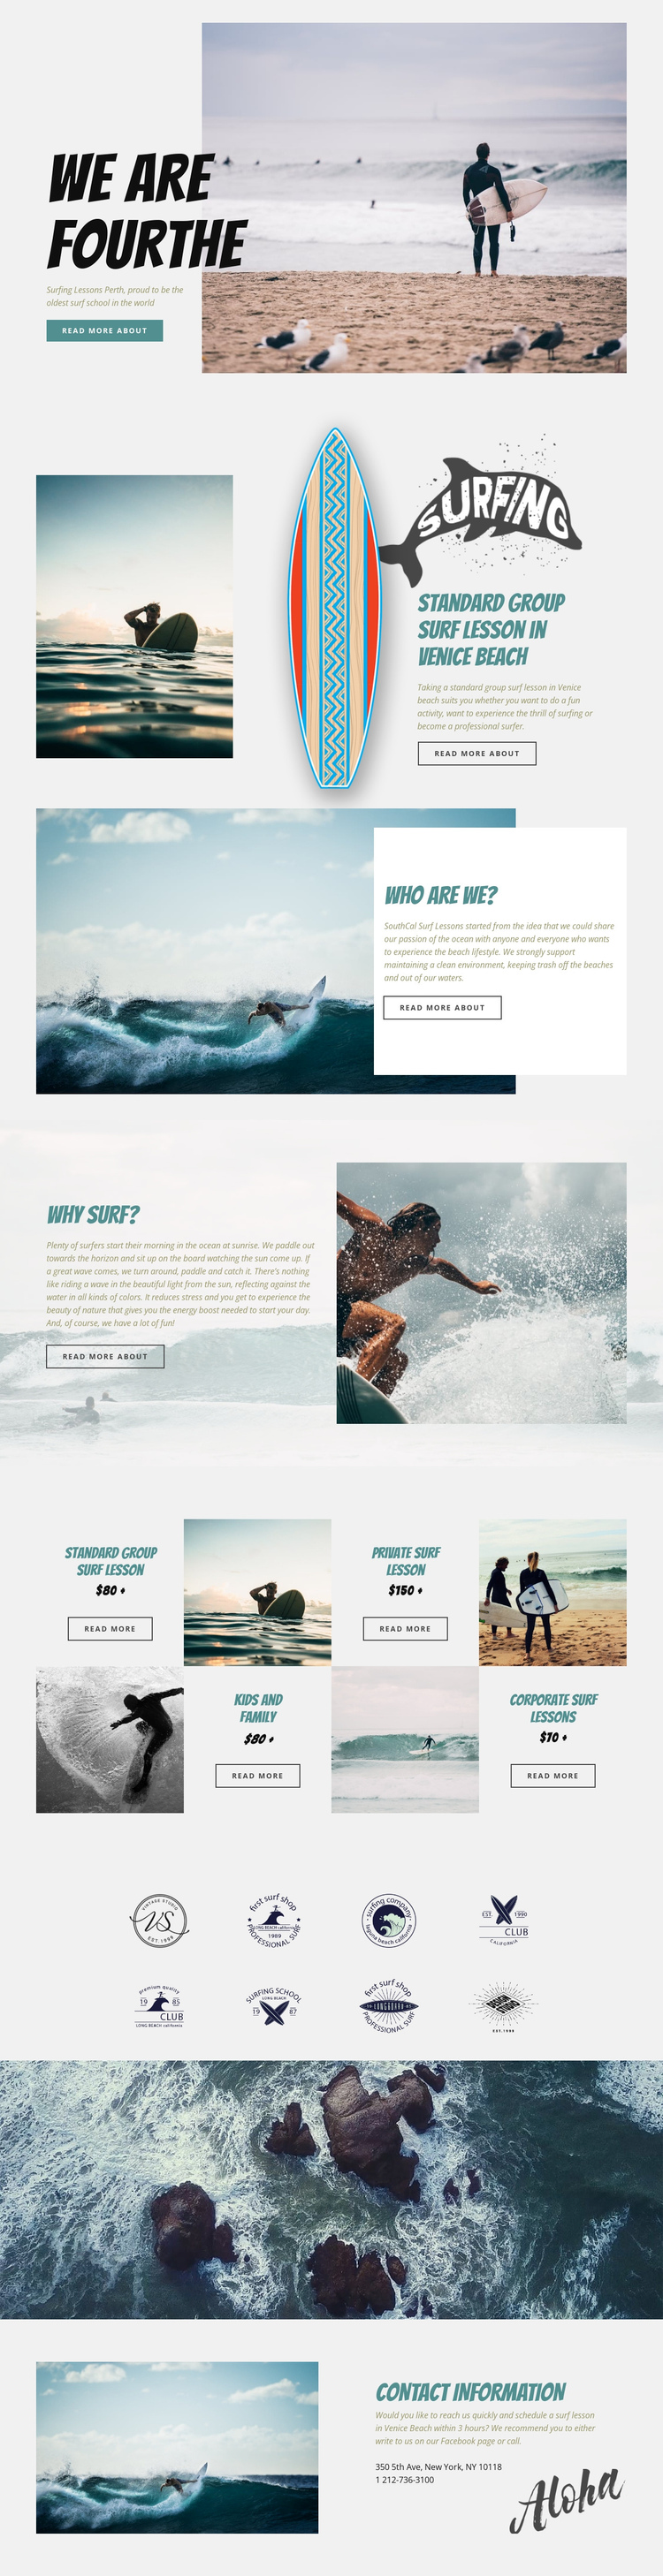 Surfing Website Builder Software